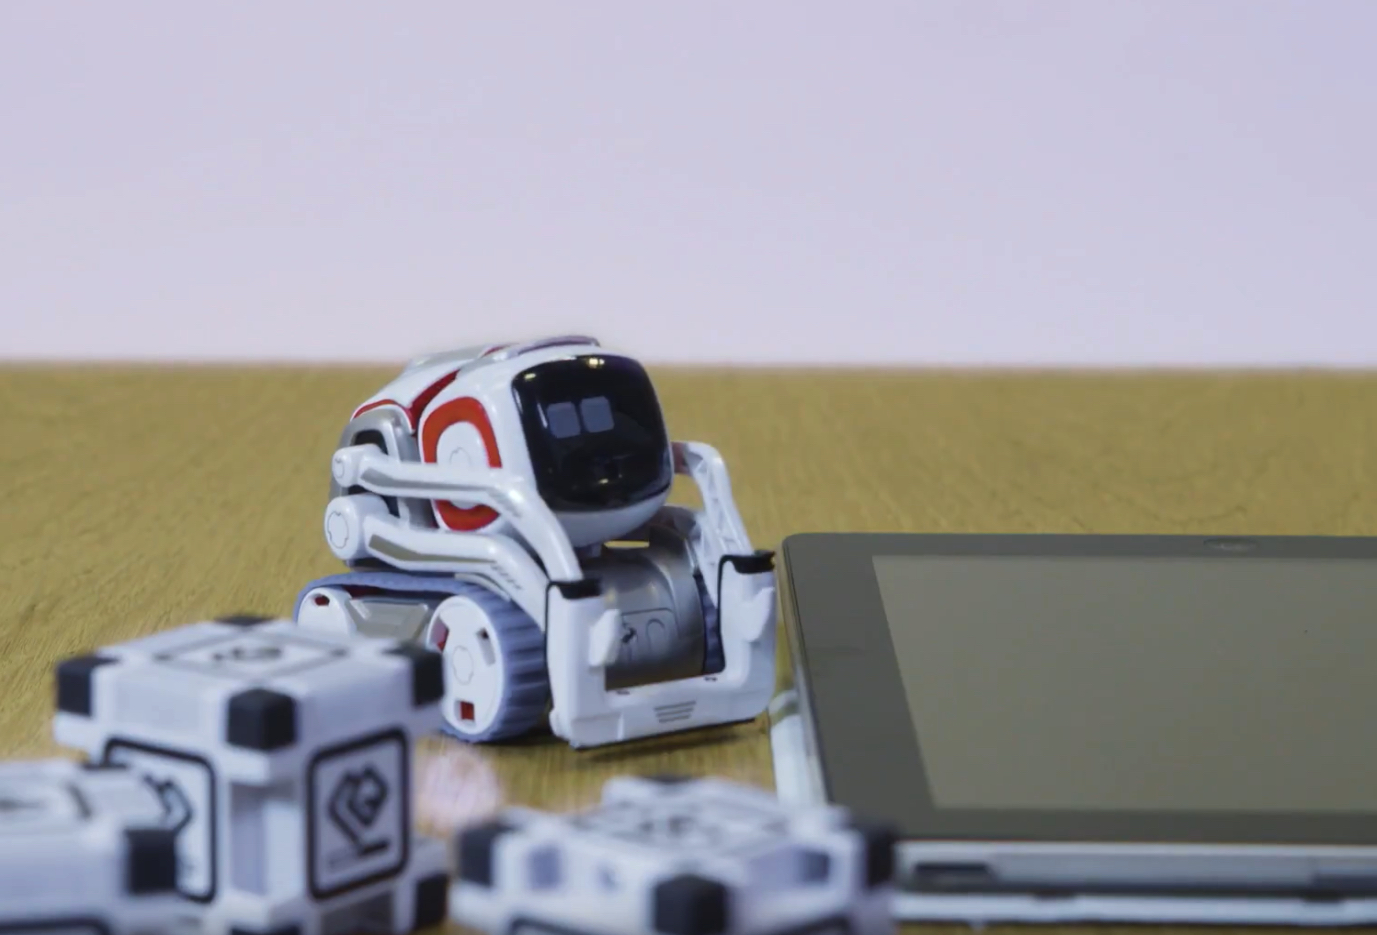 Cozmo - the robot companion playpal